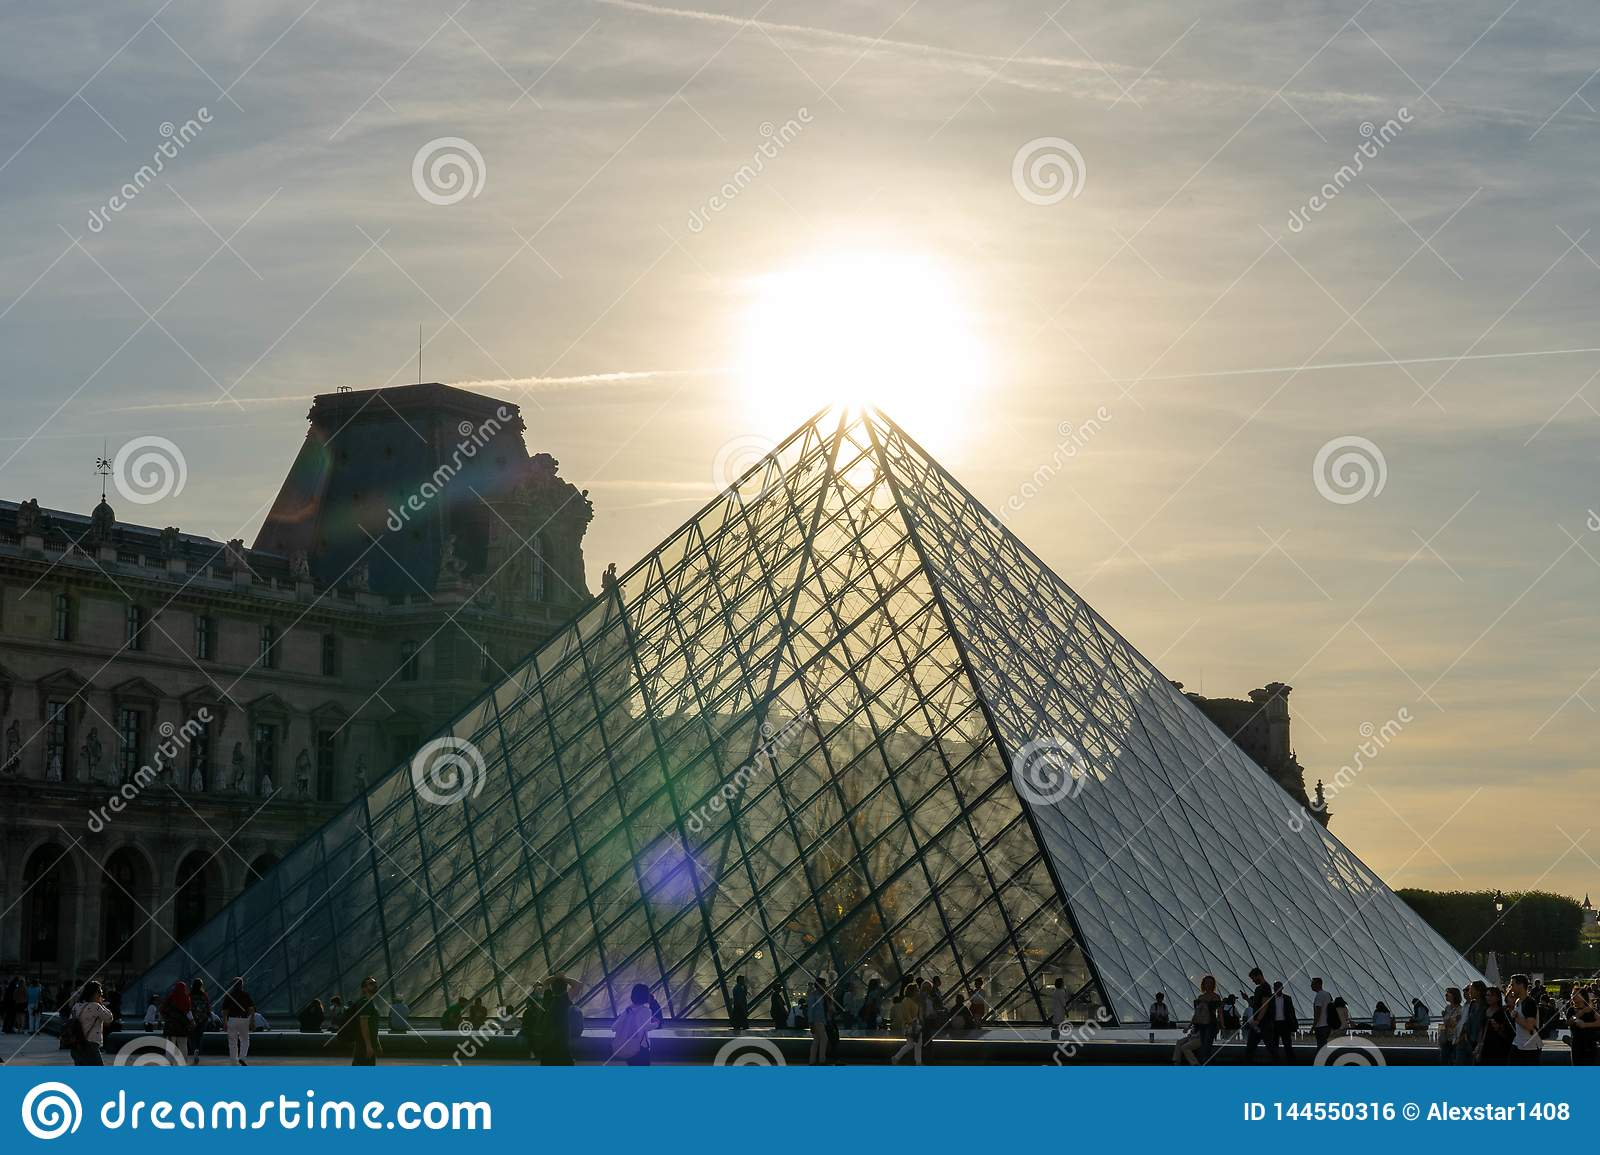 Louvre building pyramid in paris france